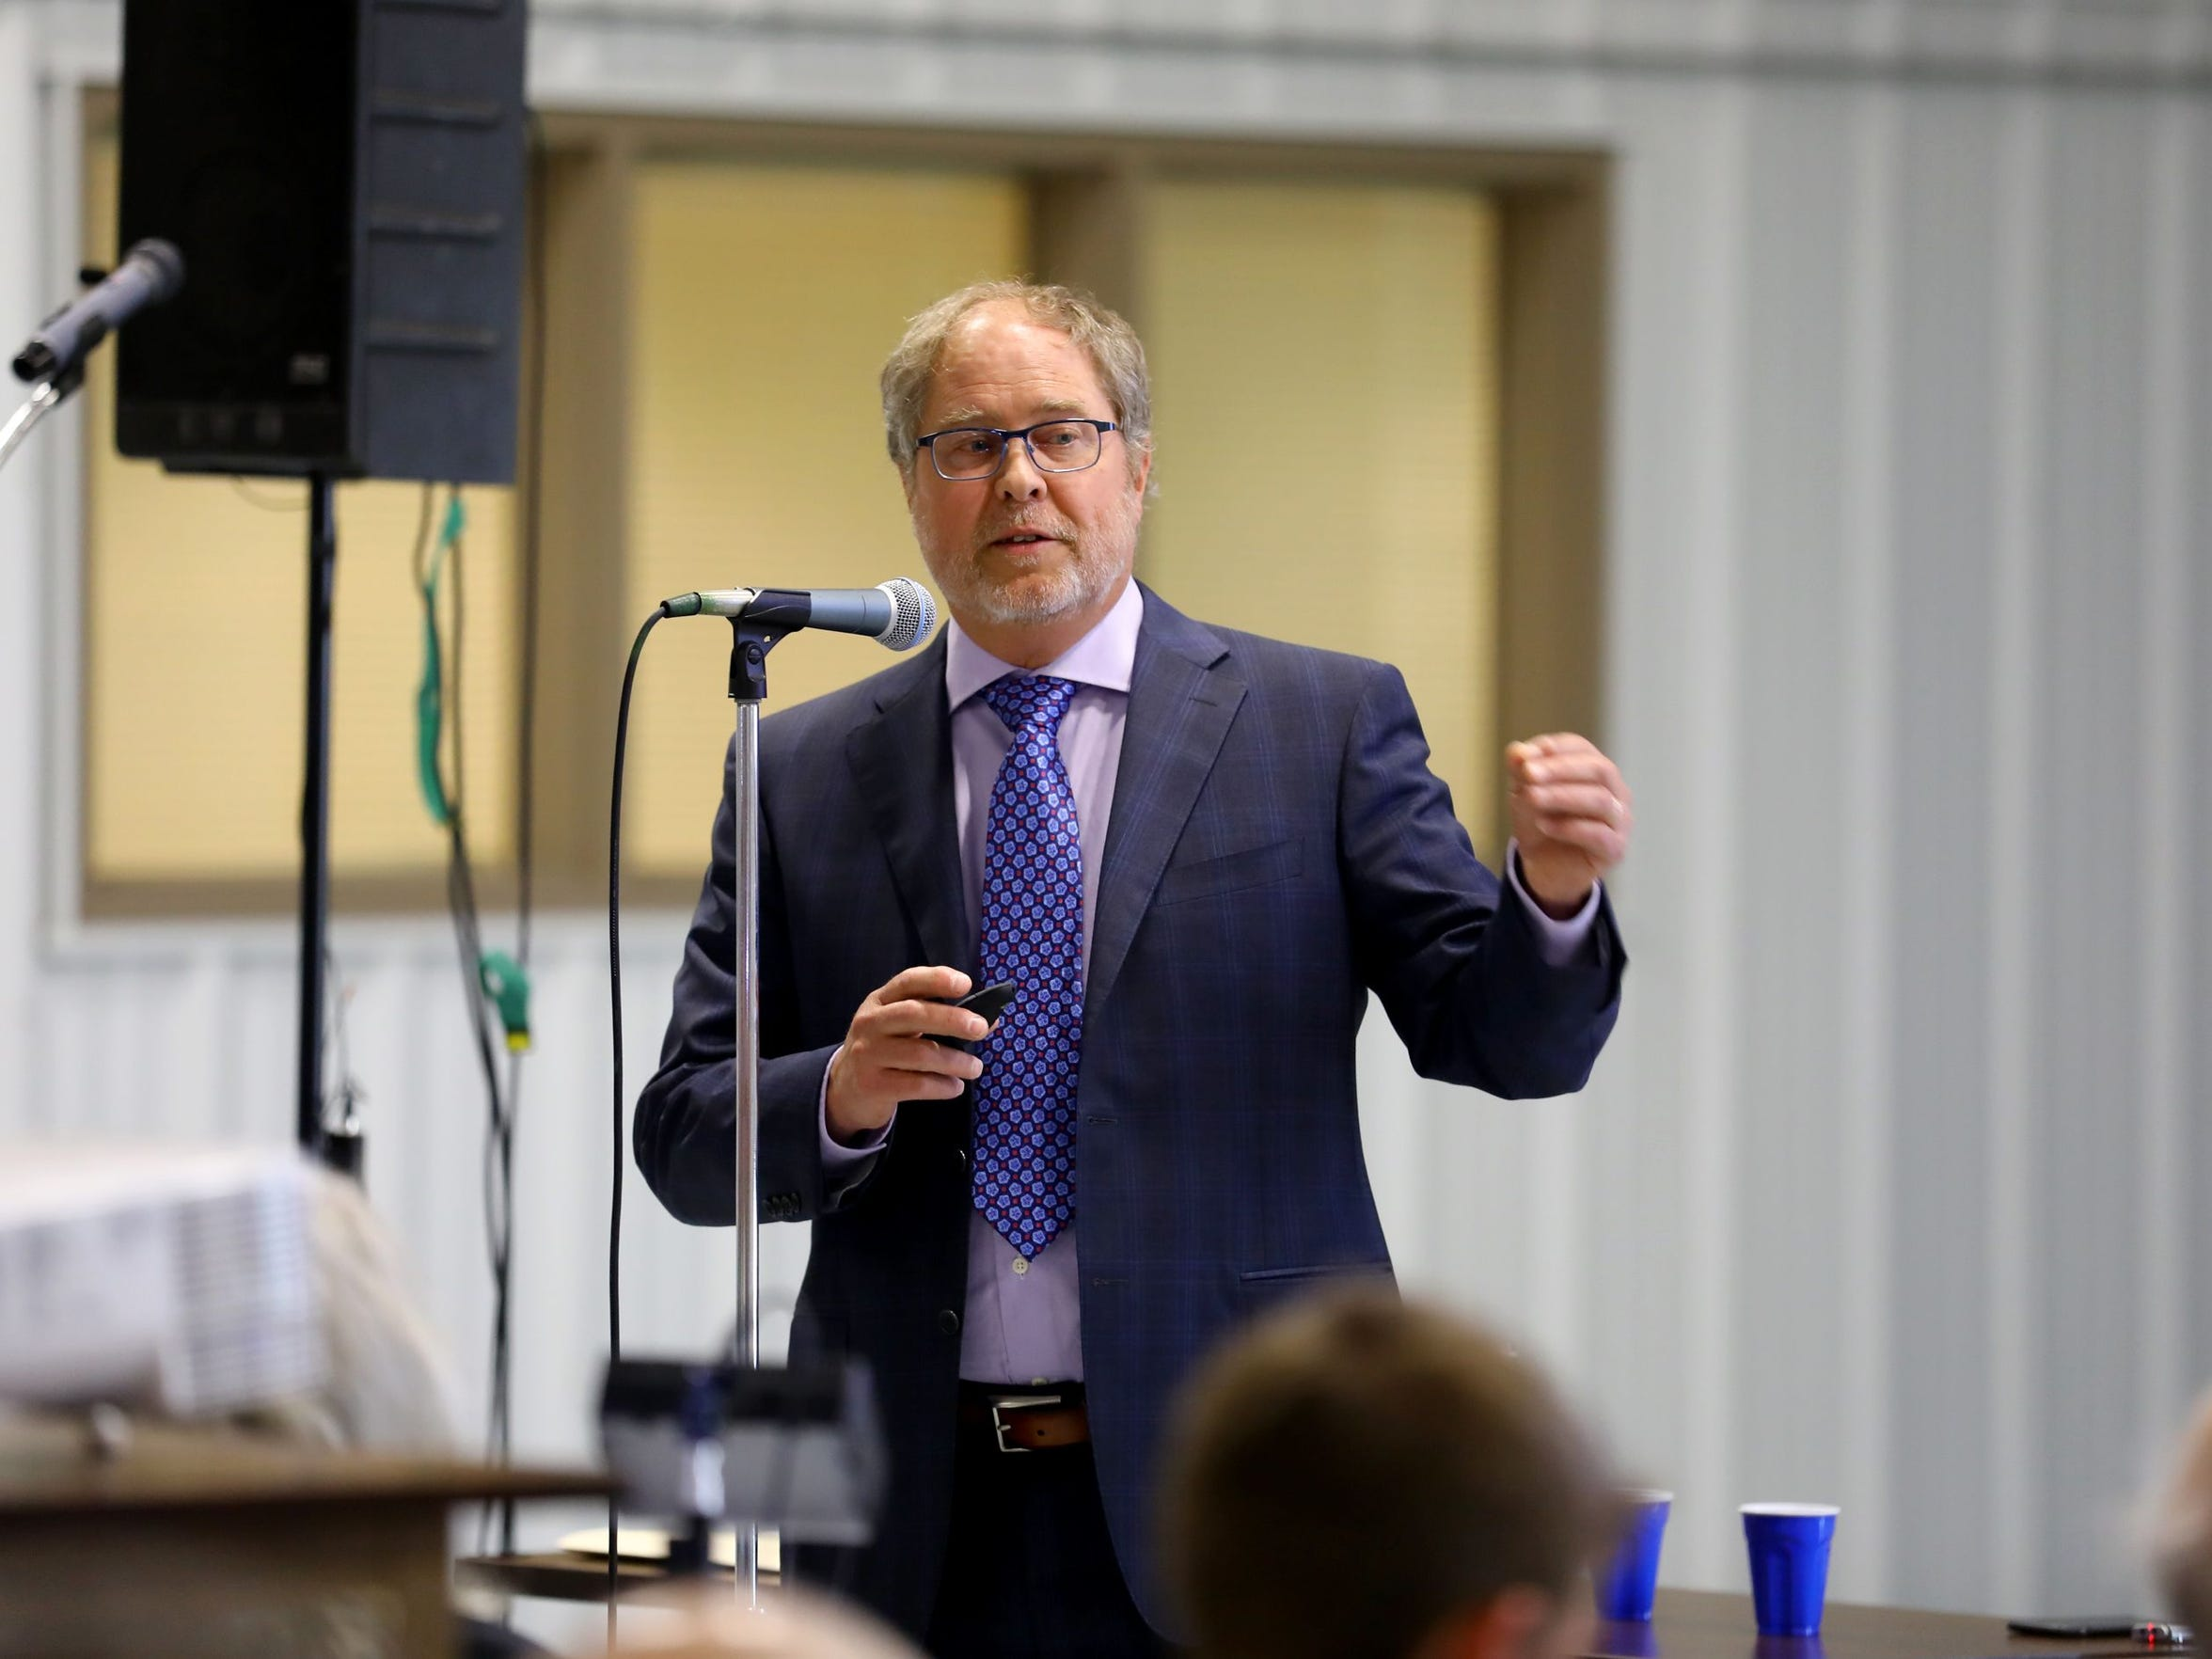 Mark Borchardt, a microbiologist with the U.S. Department of AgricultureÕs Agricultural Research Service, presented data on water contamination in Kewaunee County during a meeting at the Expo Hall at the Kewaunee County Fairgrounds, June 7, 2017. Scientists found both bovine and human waste are to blame.